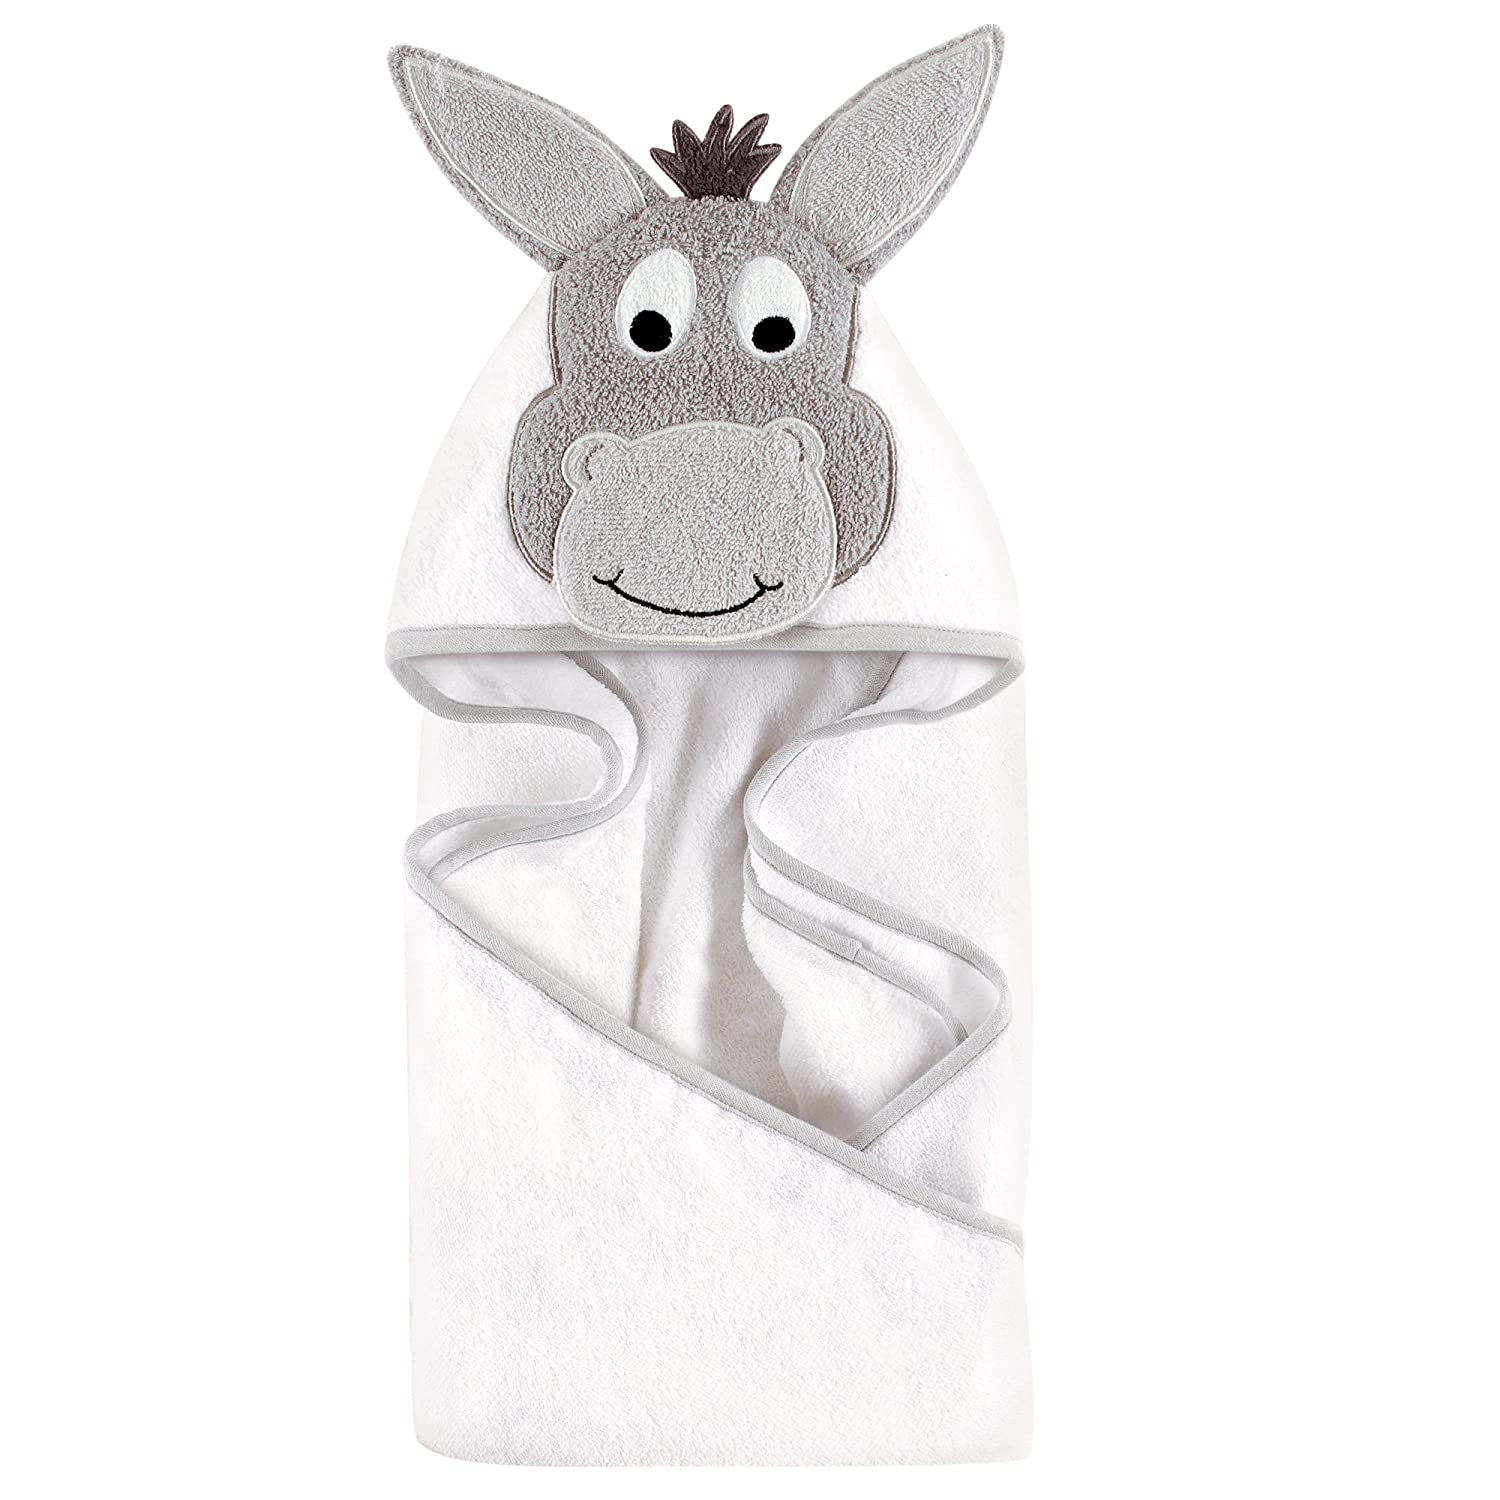 Hudson Baby Animal Face Hooded Towel, Cool Chick 57060_CoolChick